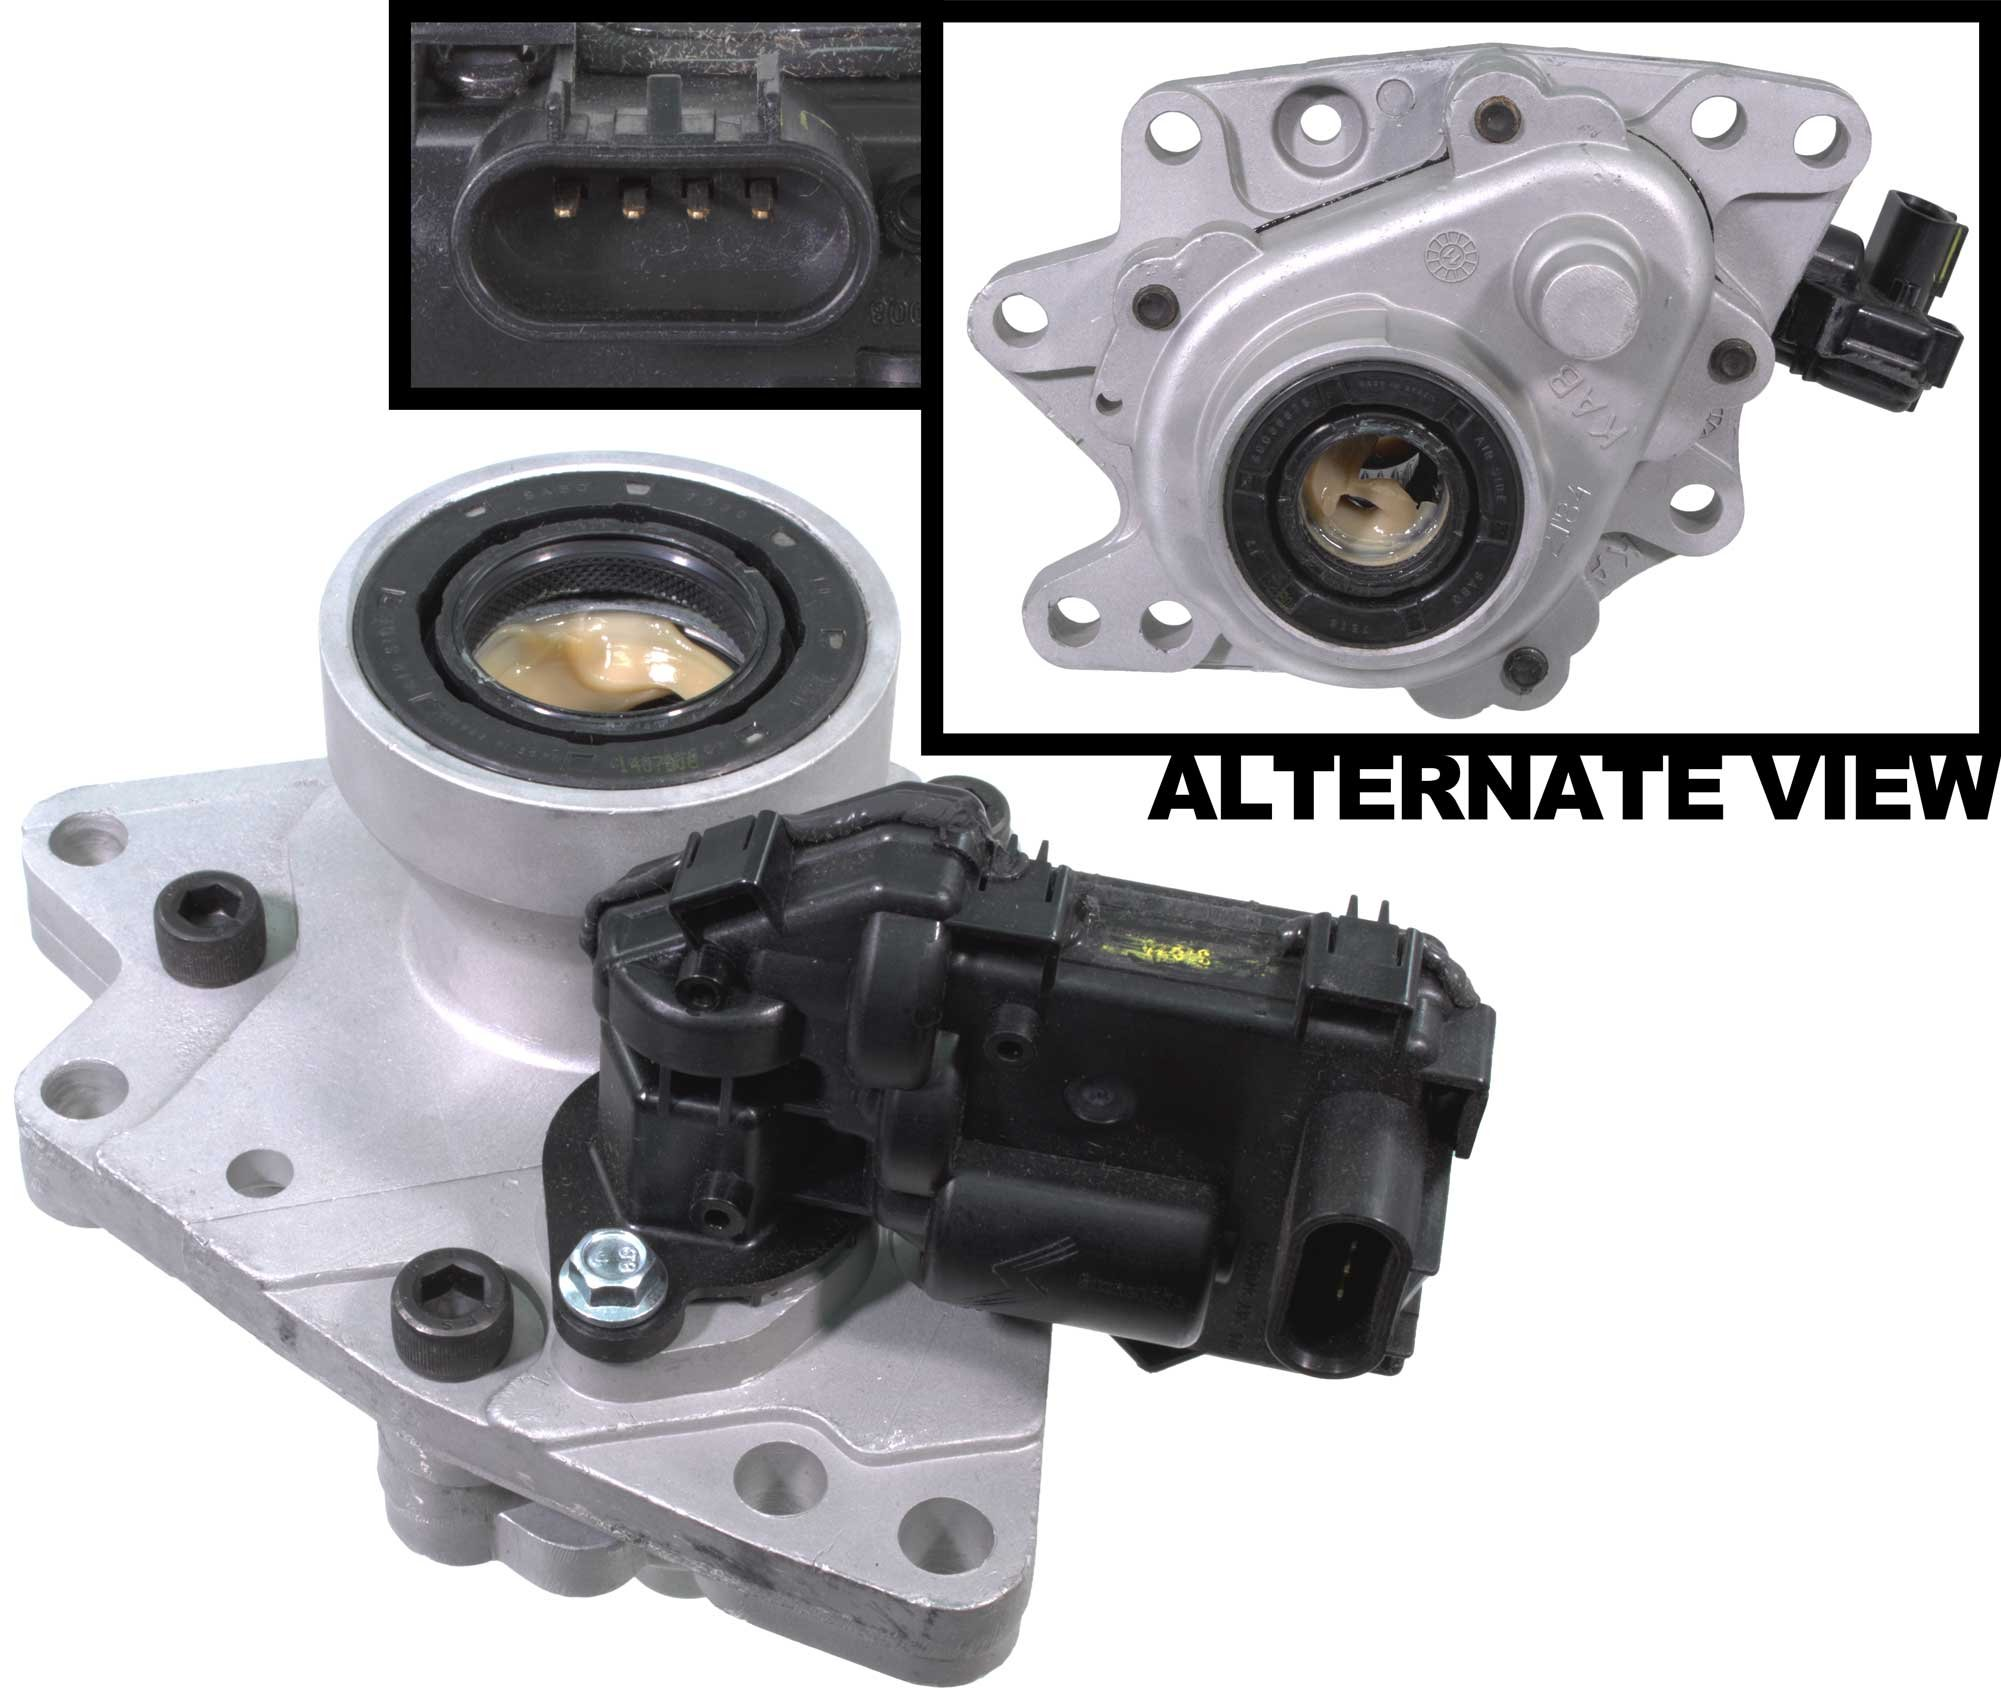 APDTY 711226 & 711214 4WD Front Differential Axle Disconnect Intermediate Shaft Bearing Assembly With 4-Wheel Drive Plunger Actuator Fits 2002-2009 Trailblazer Envoy Bravada Ascender 9-7x by APDTY